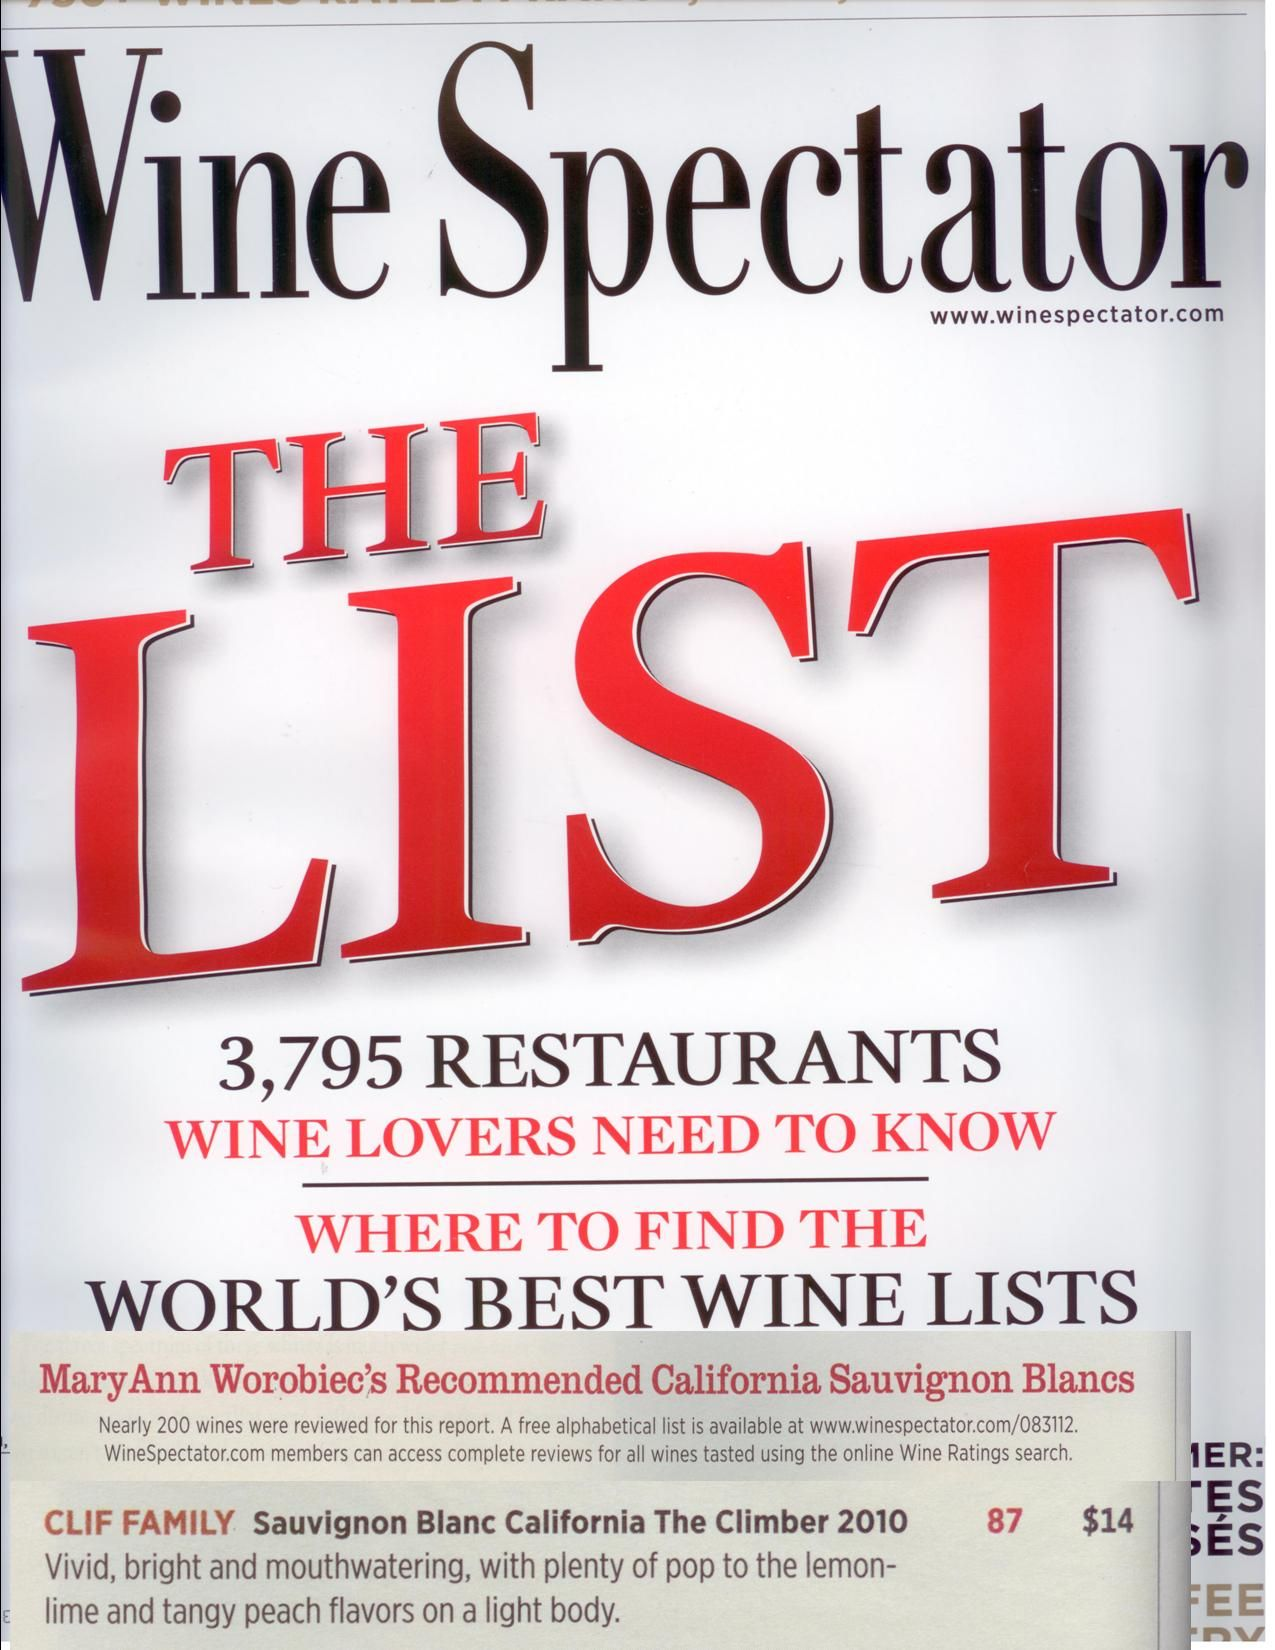 2010 Climber Sauvignon Blanc 87 Points And Top Buy For California Sauvignon Blancs From Eo Spectator Http Www Winespectato Wine Spectator Wine Wine List